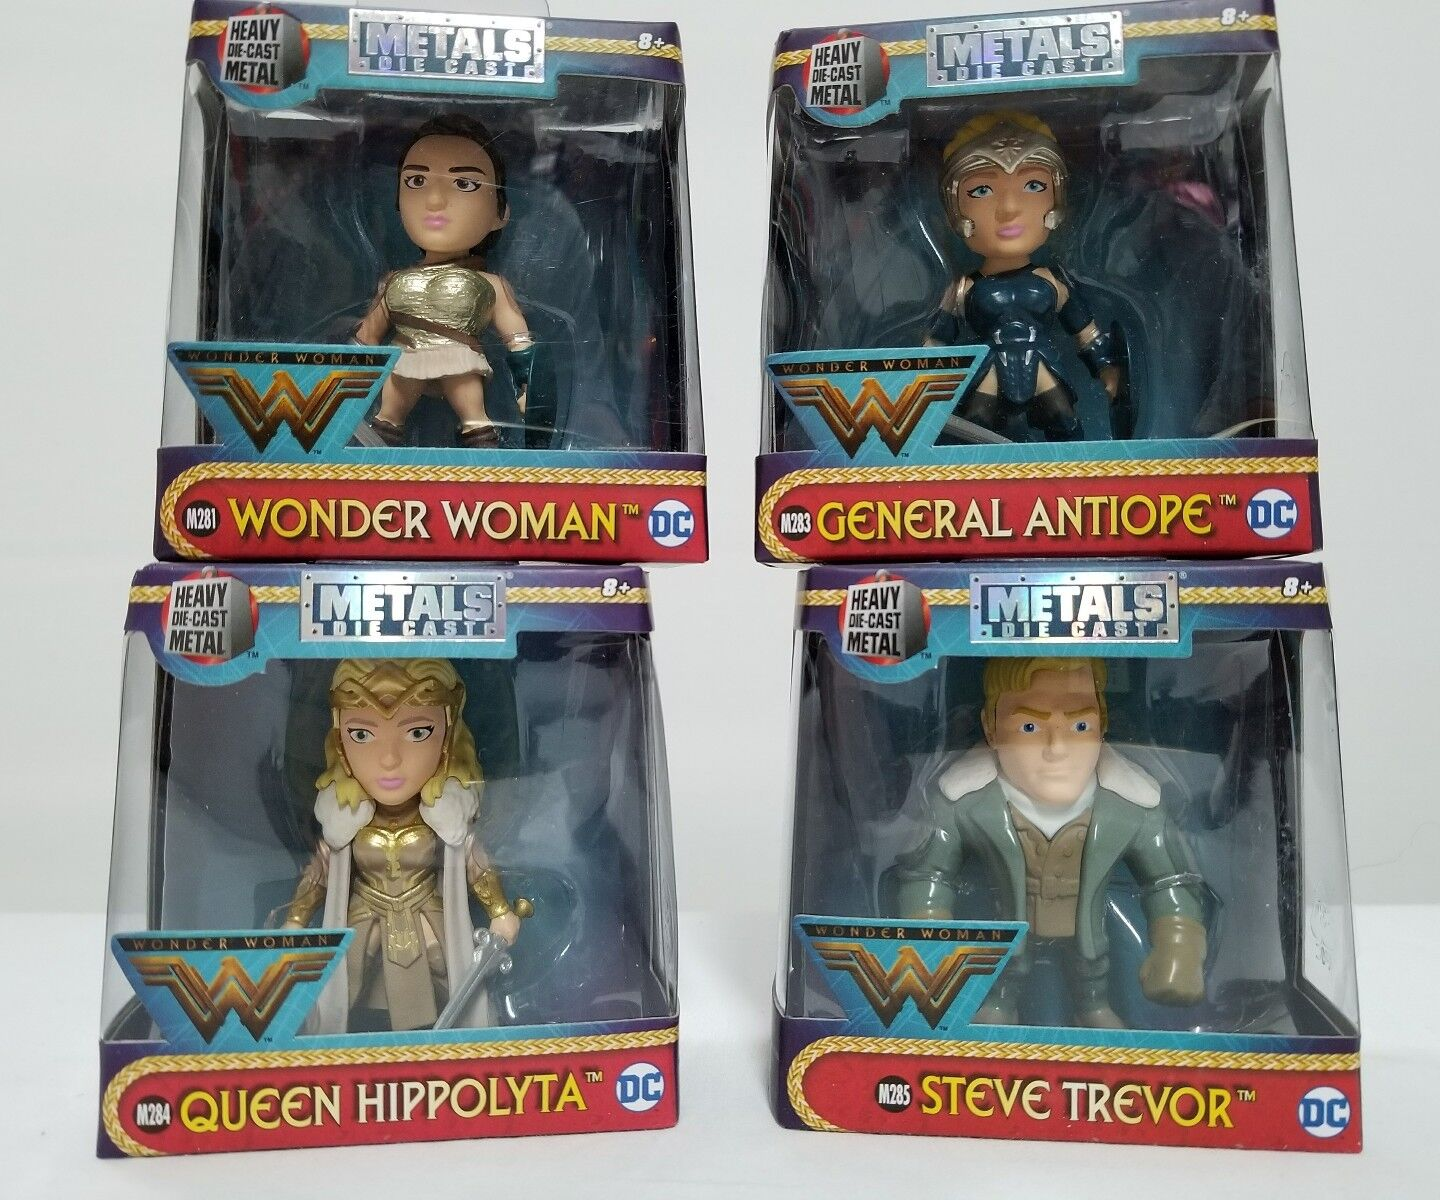 4 METAL DIE CAST FIGURES SET WONDER WOMAN STEVE TREVOR QUEEN HIPPOLYTA ANTIOPE